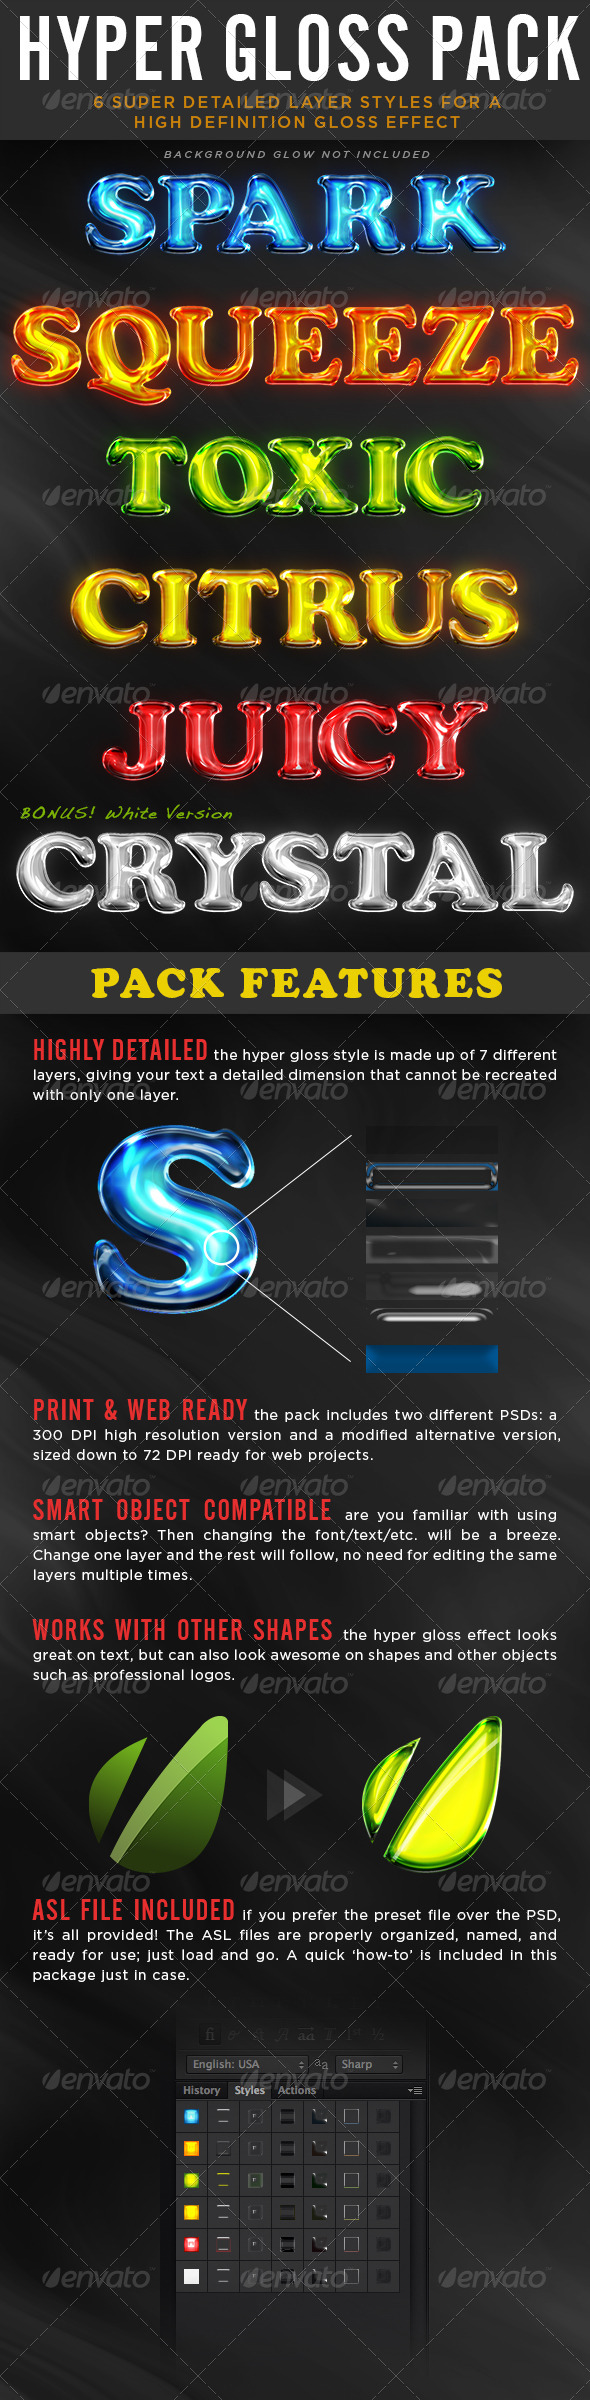 GraphicRiver Hyper Gloss Style Pack 4928199